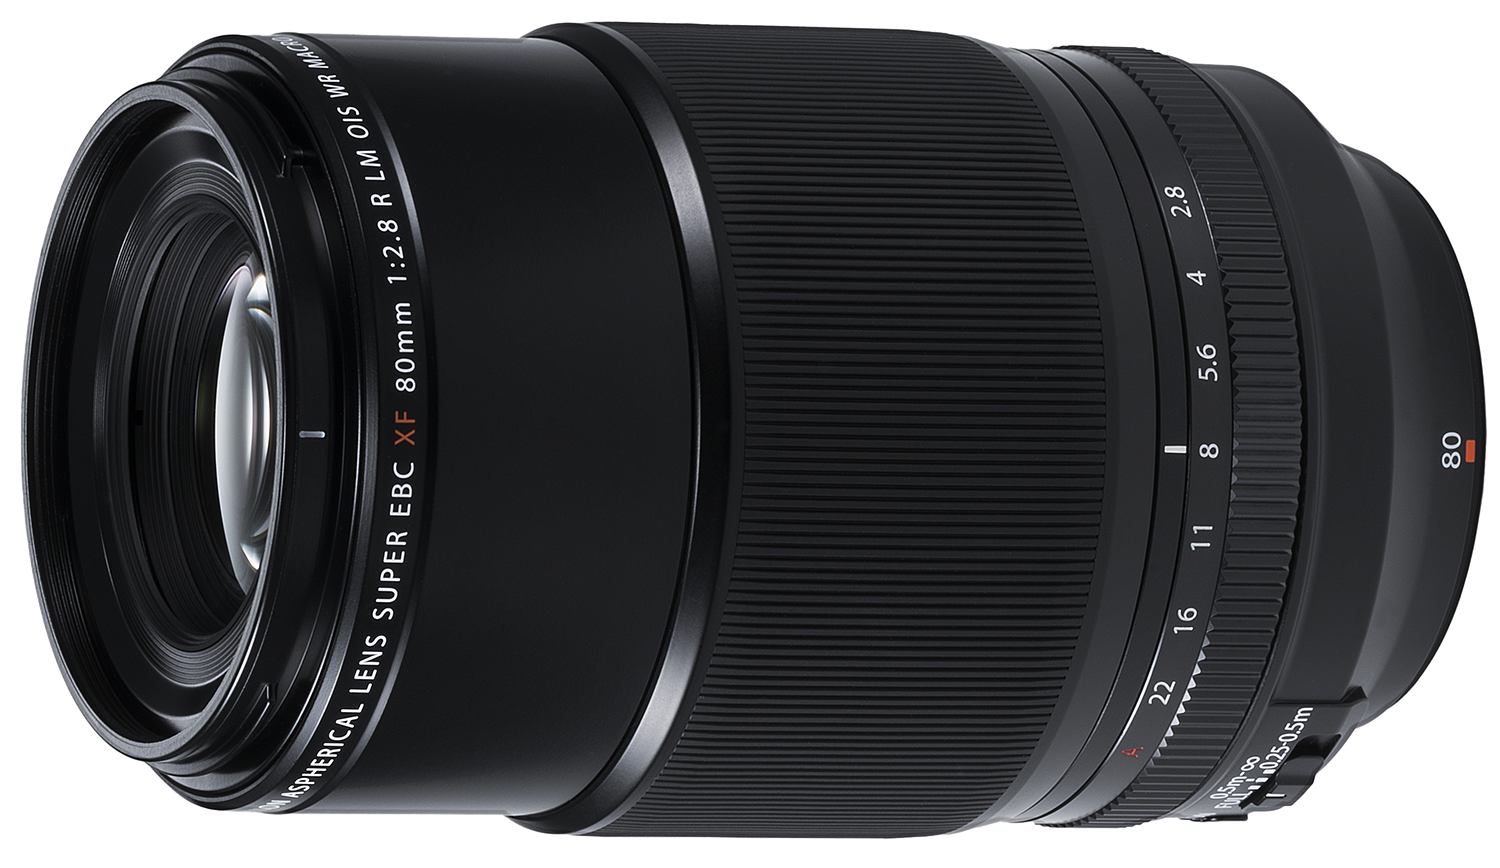 Now in stock! The Fujifilm XF80mm F2.8 R LM OIS WR Macro